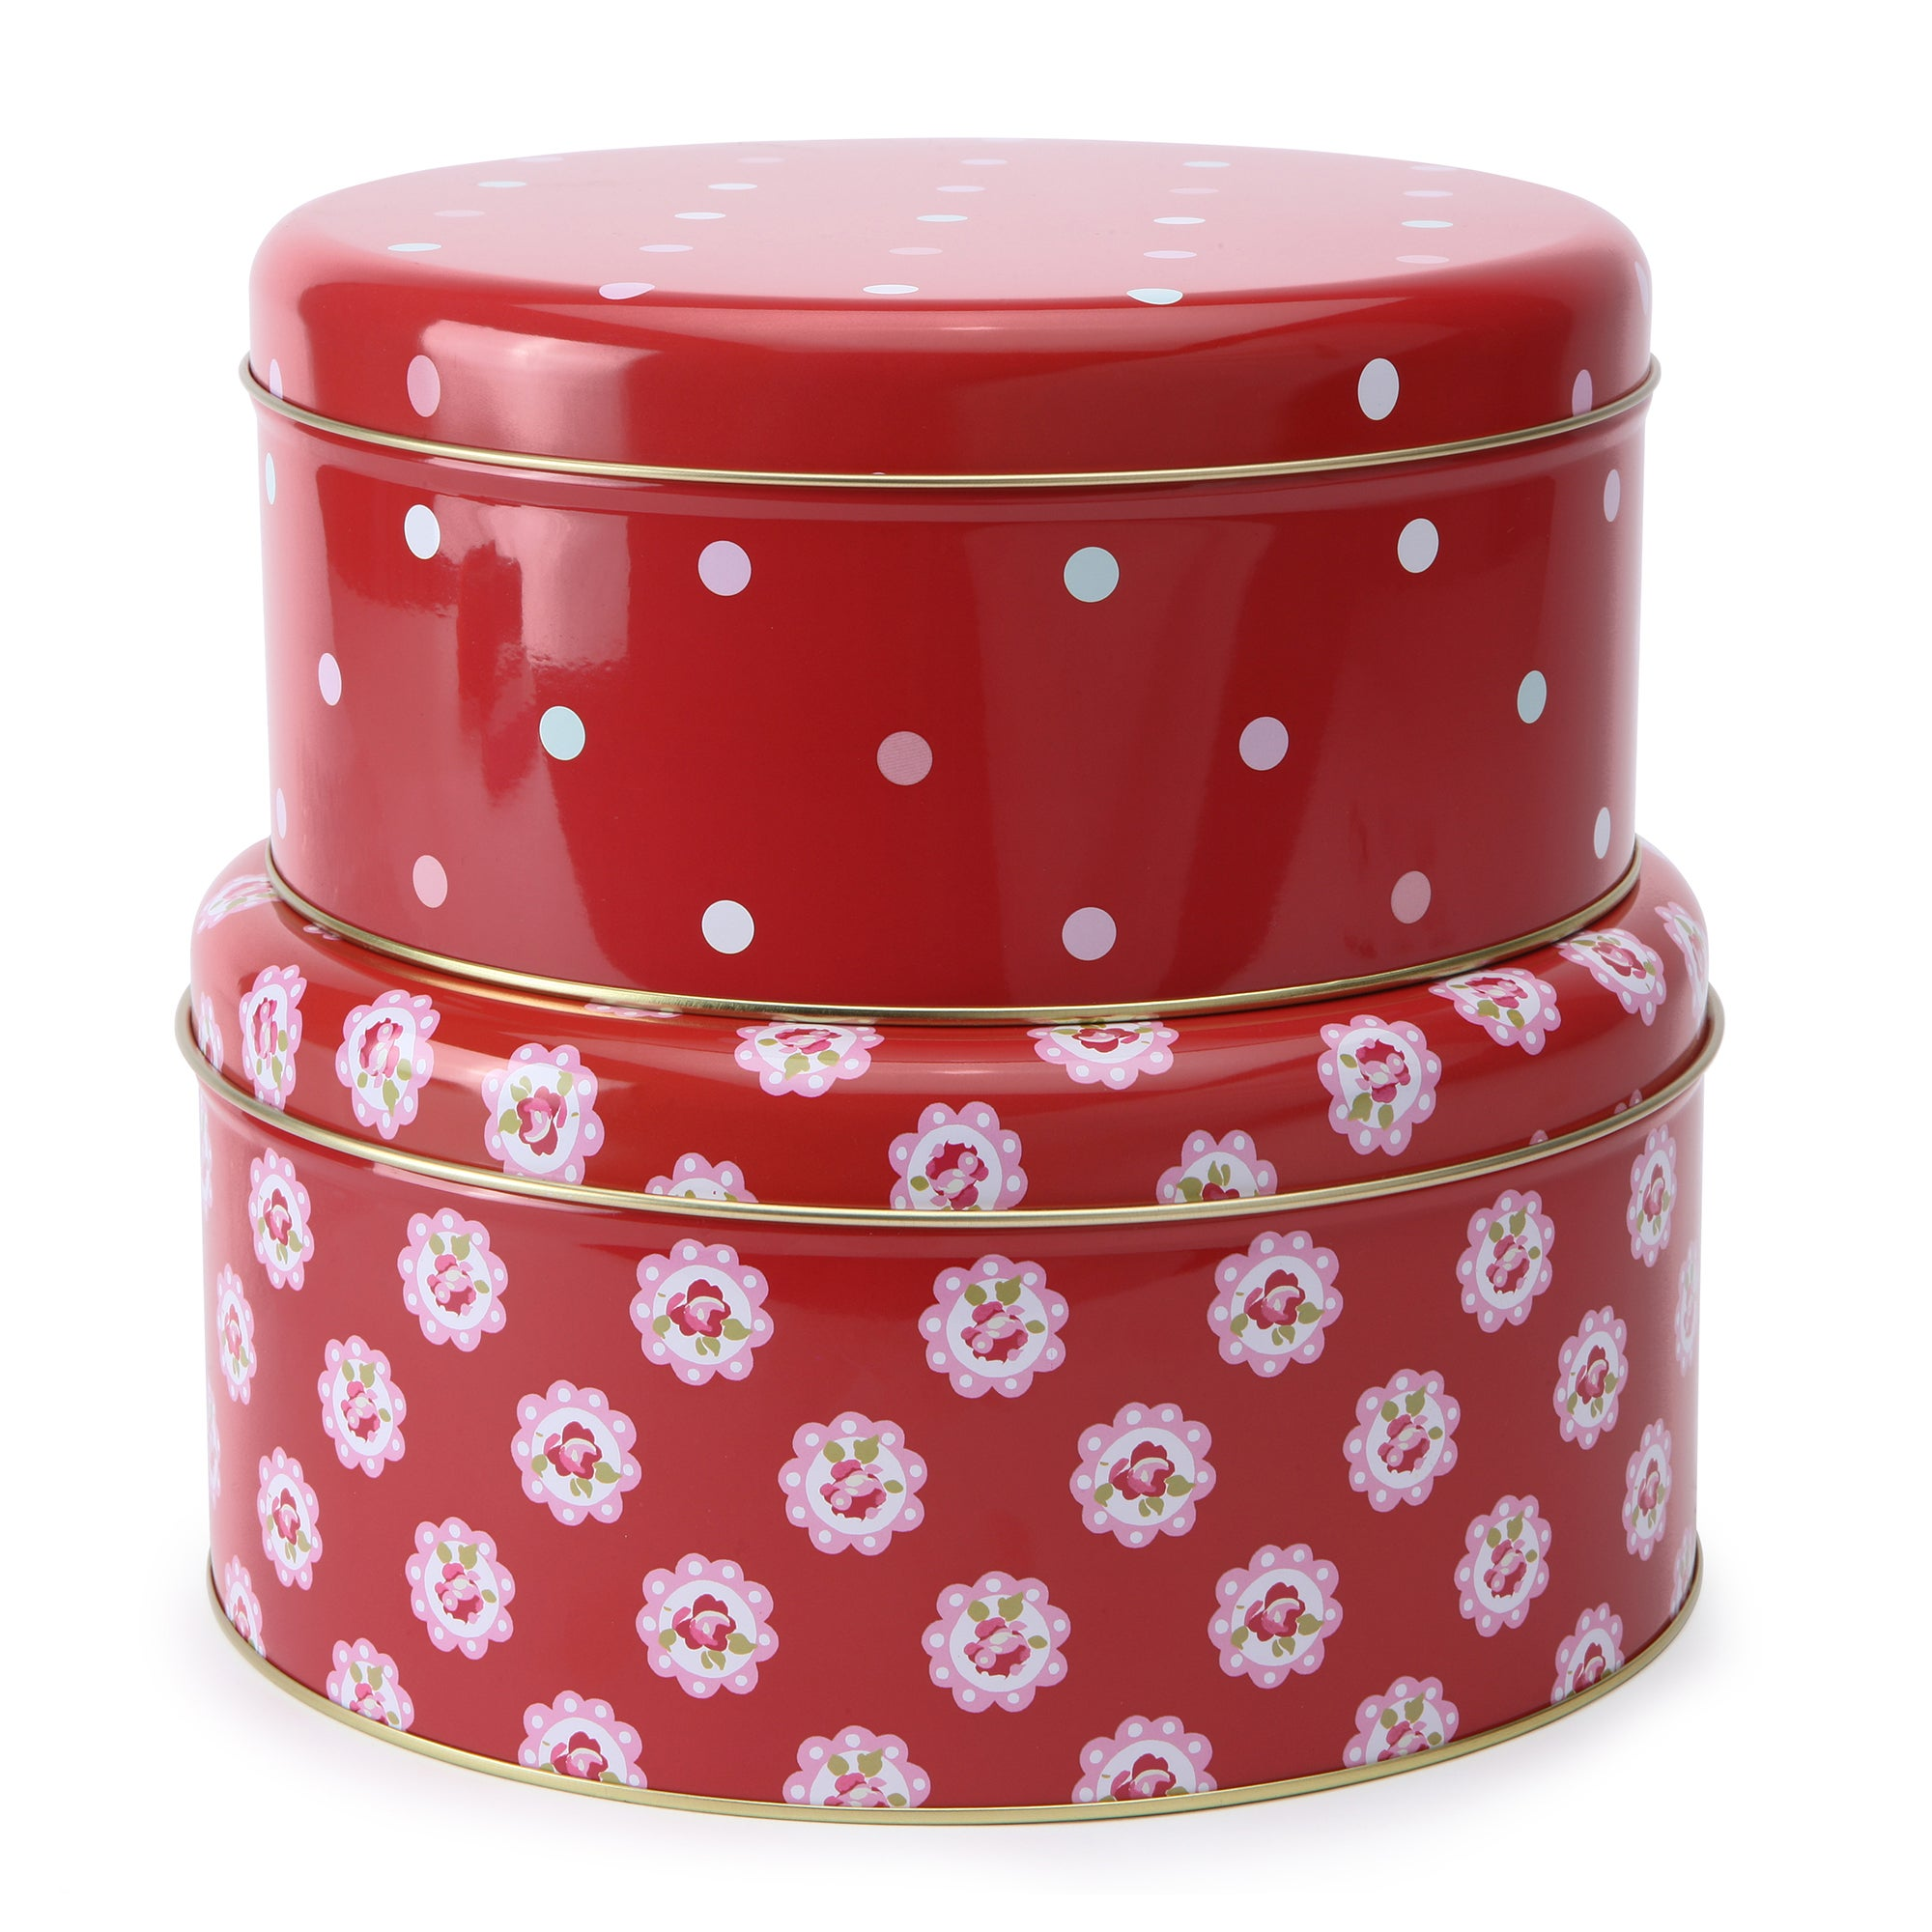 Rose and Ellis Allexton Collection Set of Two Cake Tins